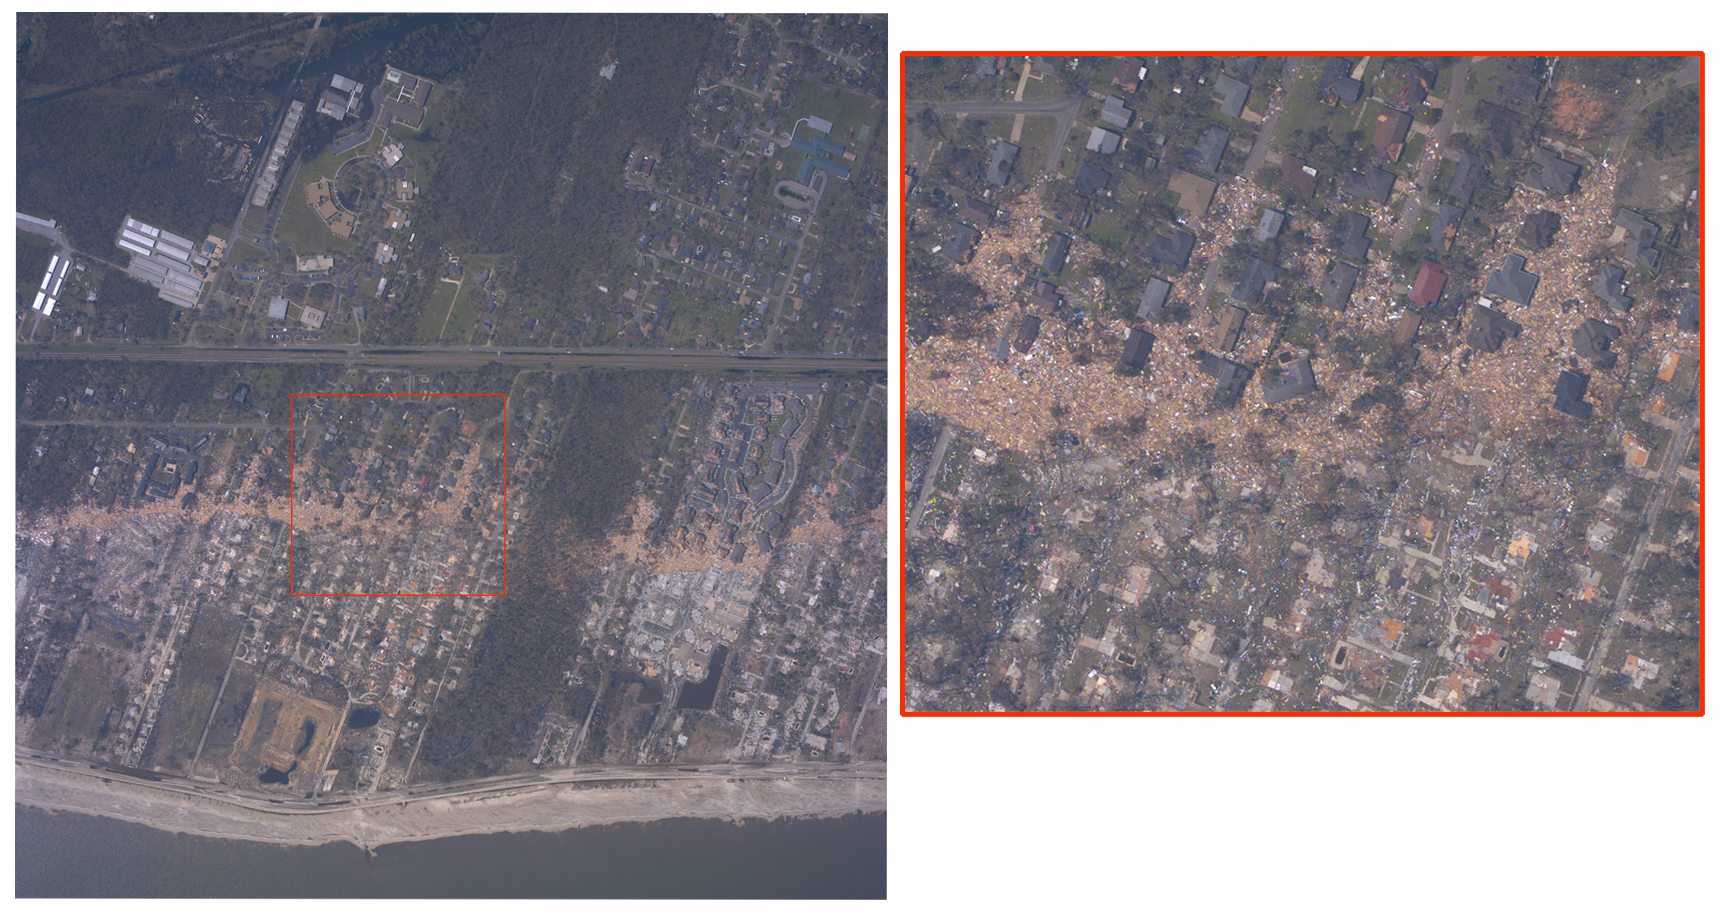 Aerial photo of the Mississippi coastline after Hurricane Katrina (2005).  The area was heavily damaged by storm surge.